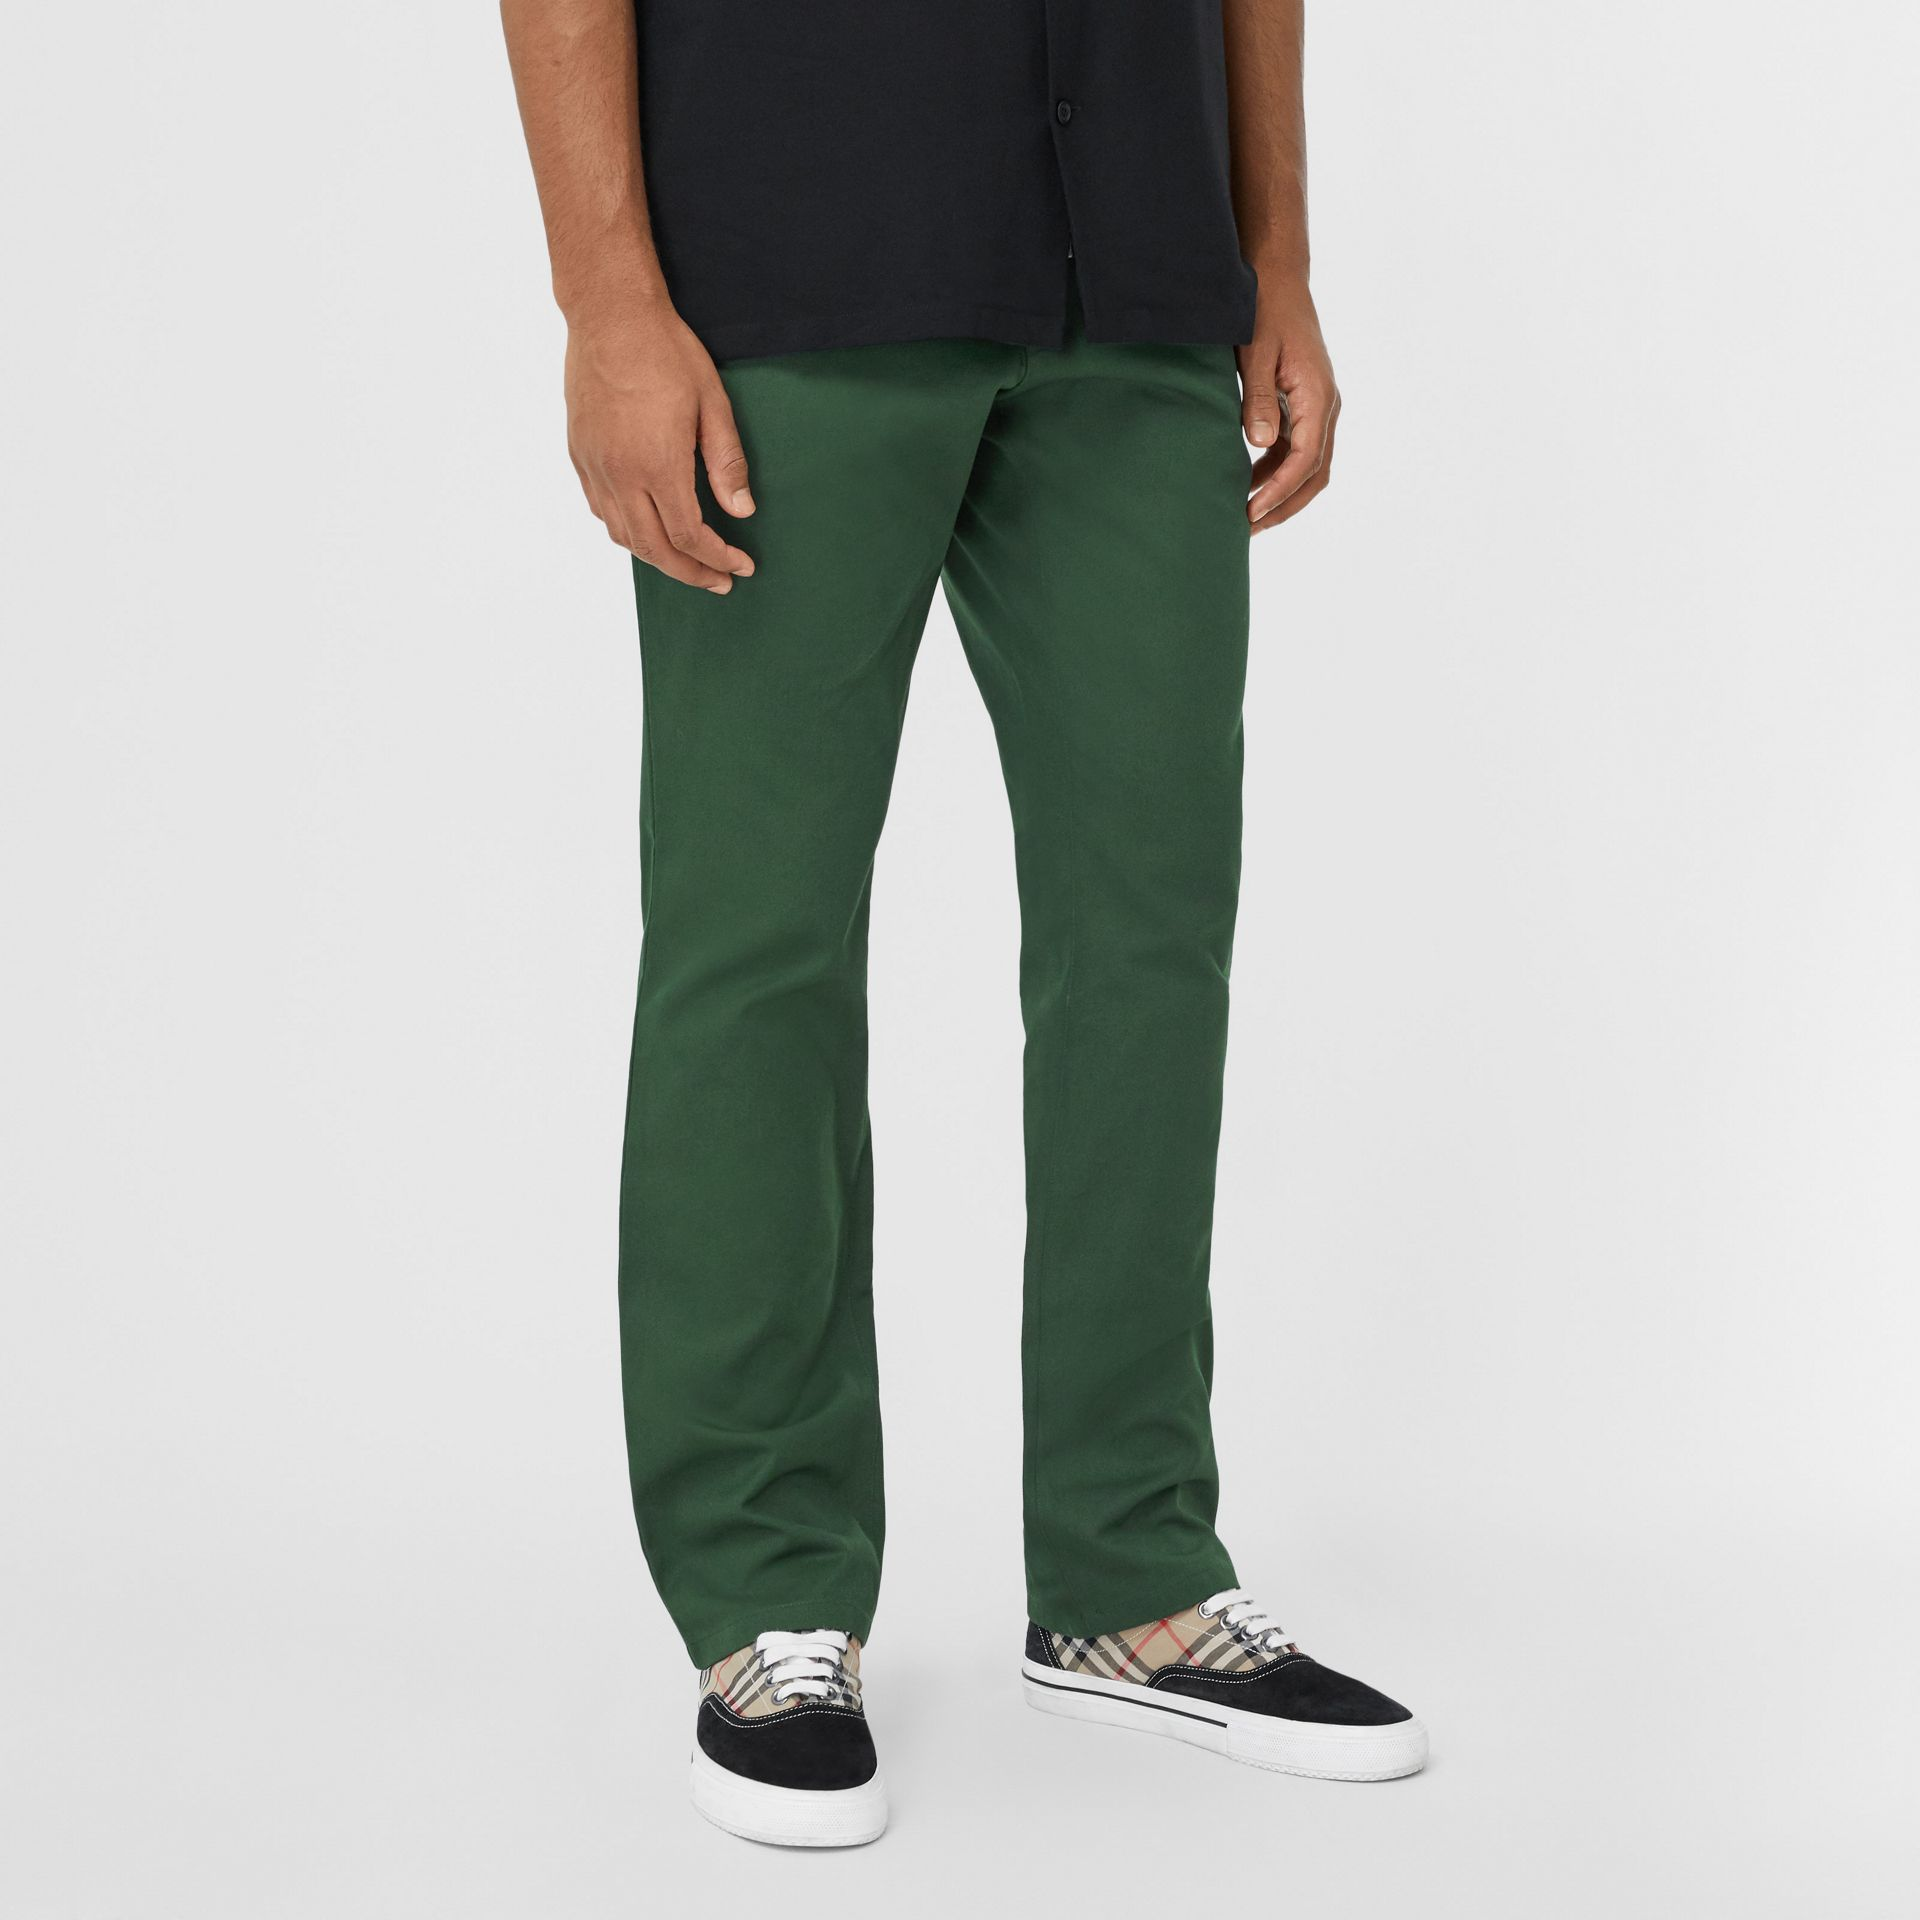 Classic Fit Cotton Chinos in Dark Pine Green - Men | Burberry - gallery image 4